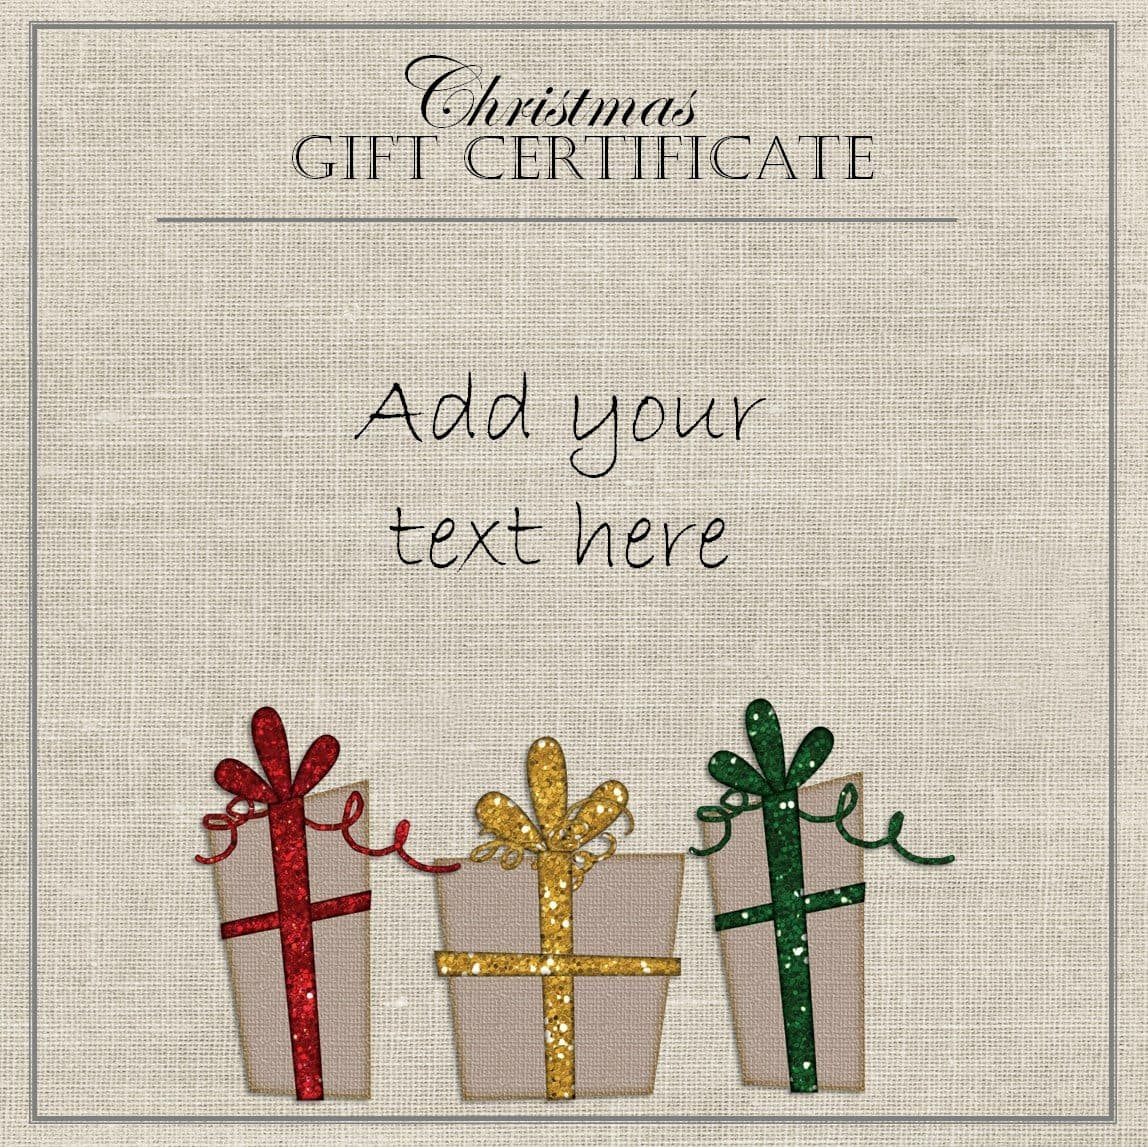 Free christmas gift certificate template customize online download elegant gift certificate template with three gifts with red yellow and green ribbons alramifo Choice Image